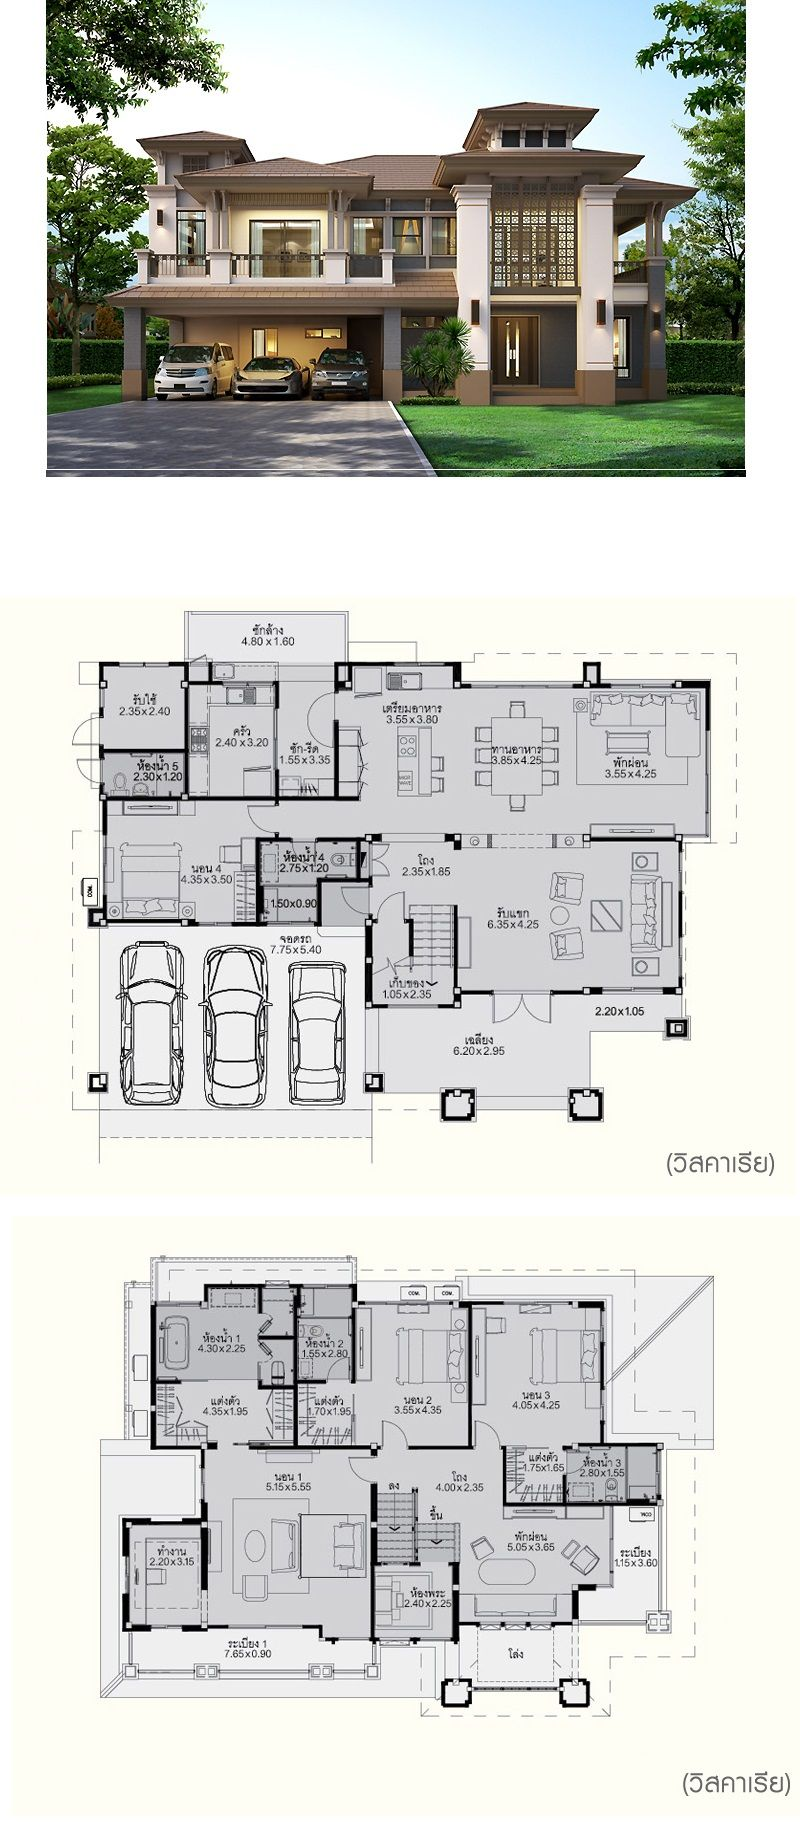 A Little One The Top But Has Everything I D Want Minus An Enclosed Garage House Layouts House Layout Plans Modern House Plans